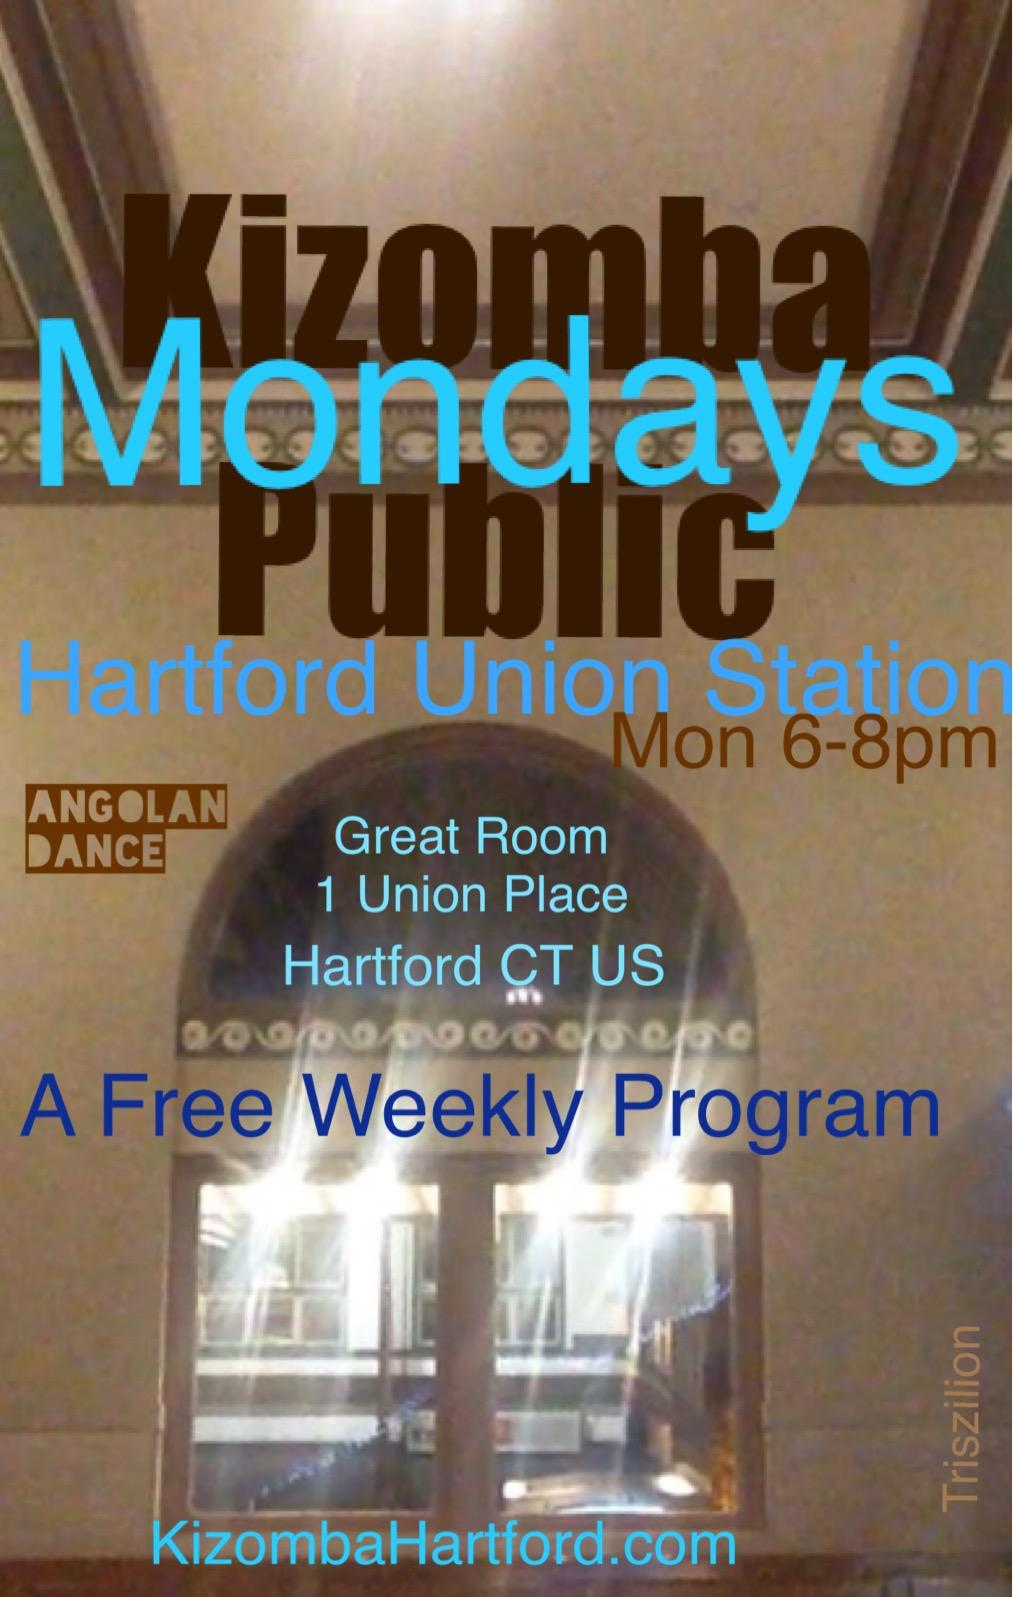 Kizomba Public Mondays Union Station Great Room at Union Place Hartford CT USA 6-8pm